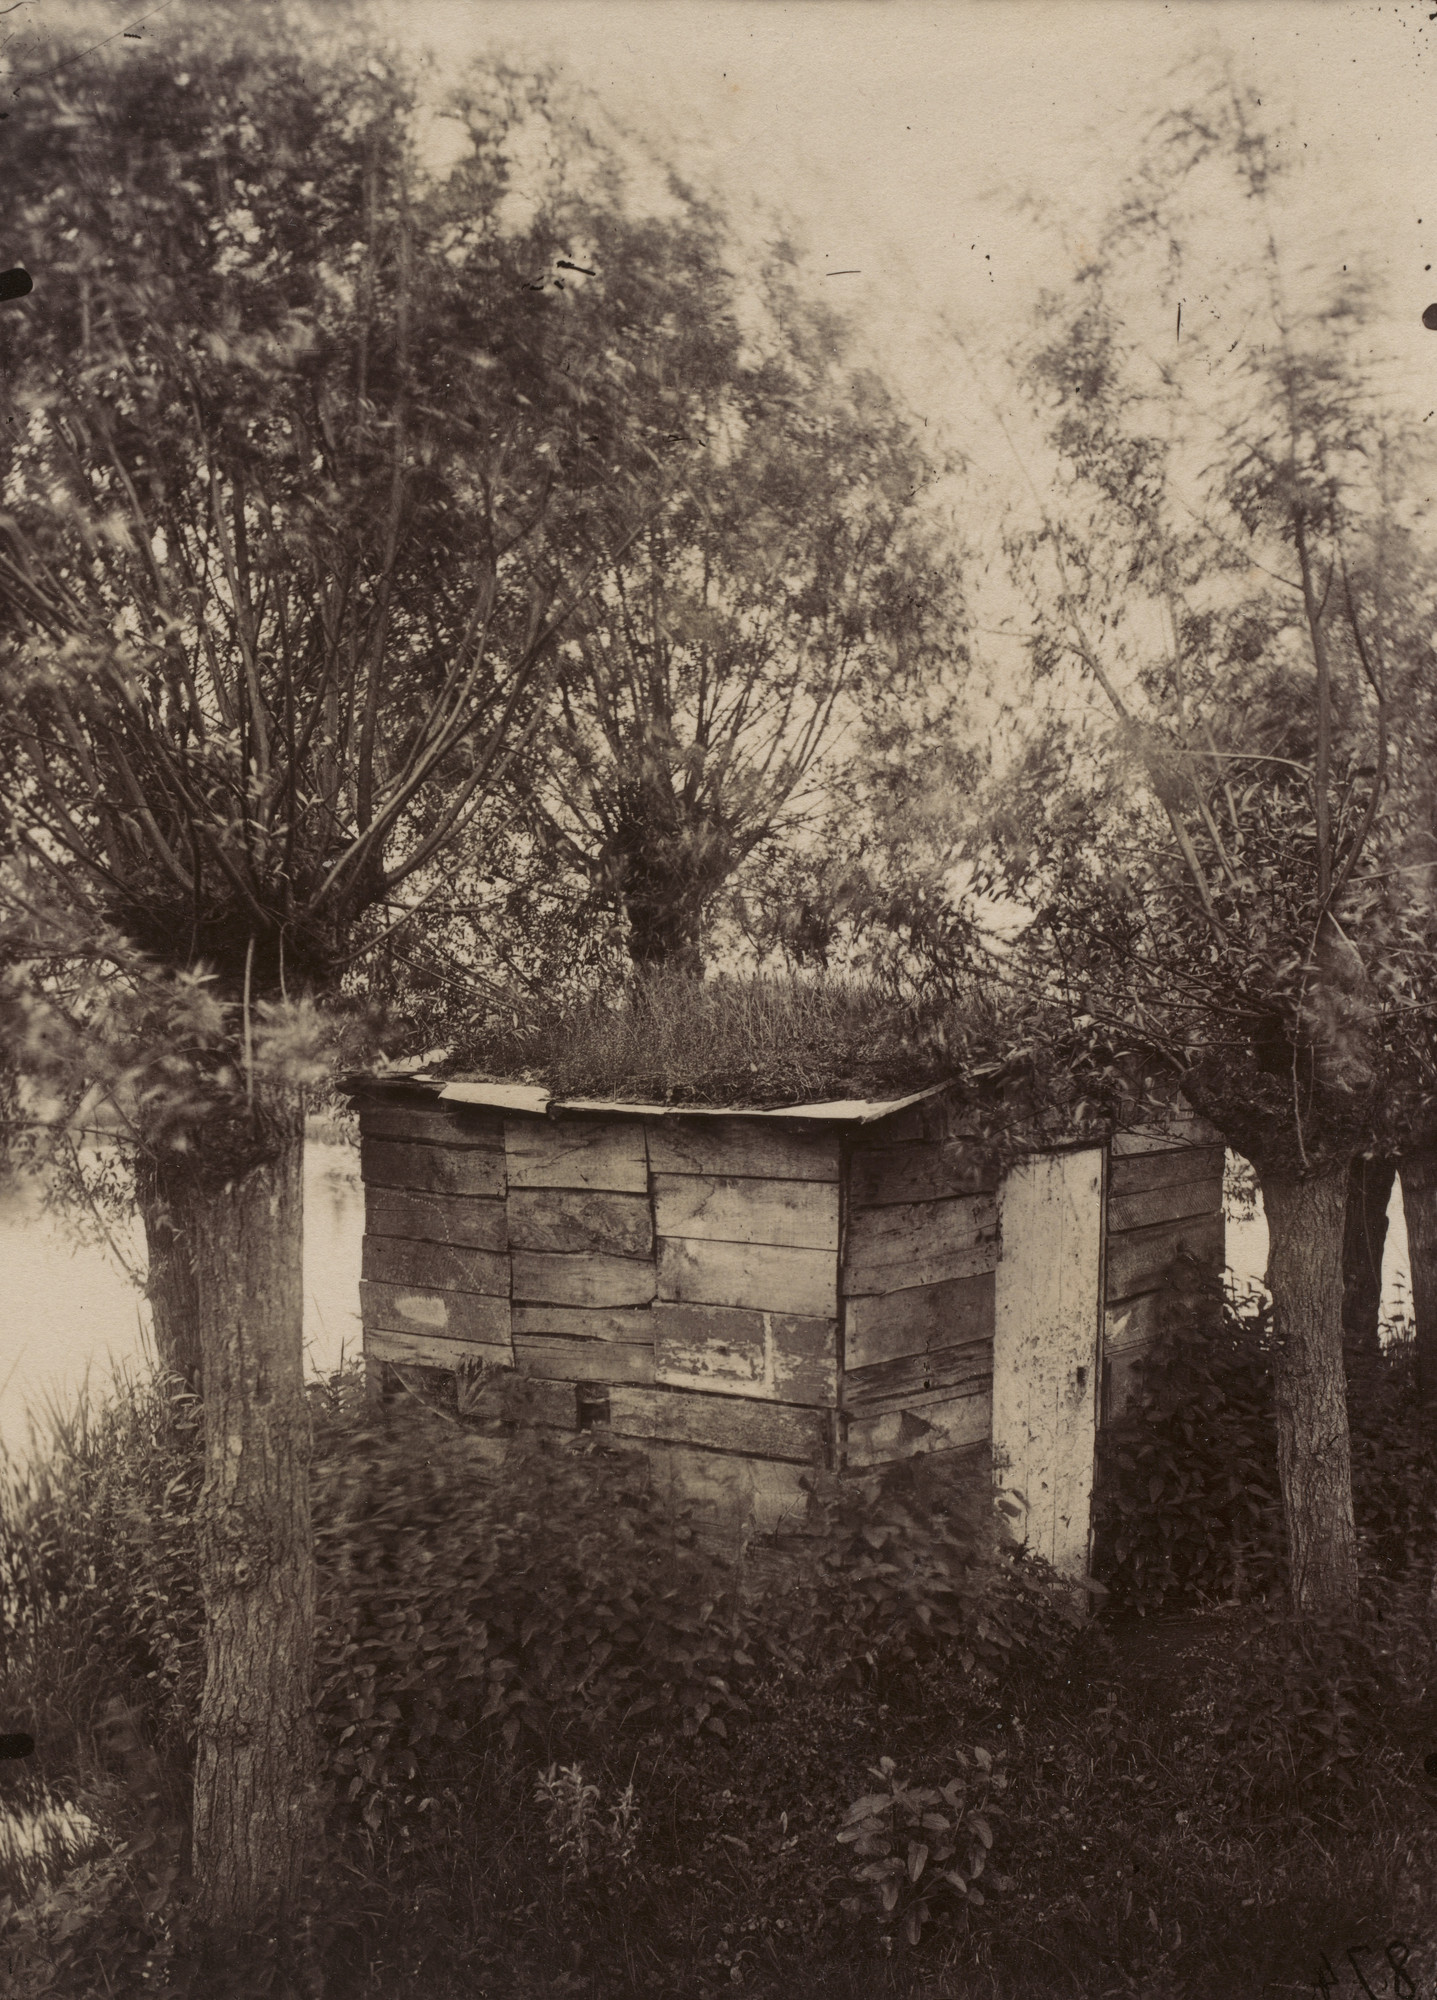 Eugène Atget. Untitled [Hut Among Willows]. Probably before 1898